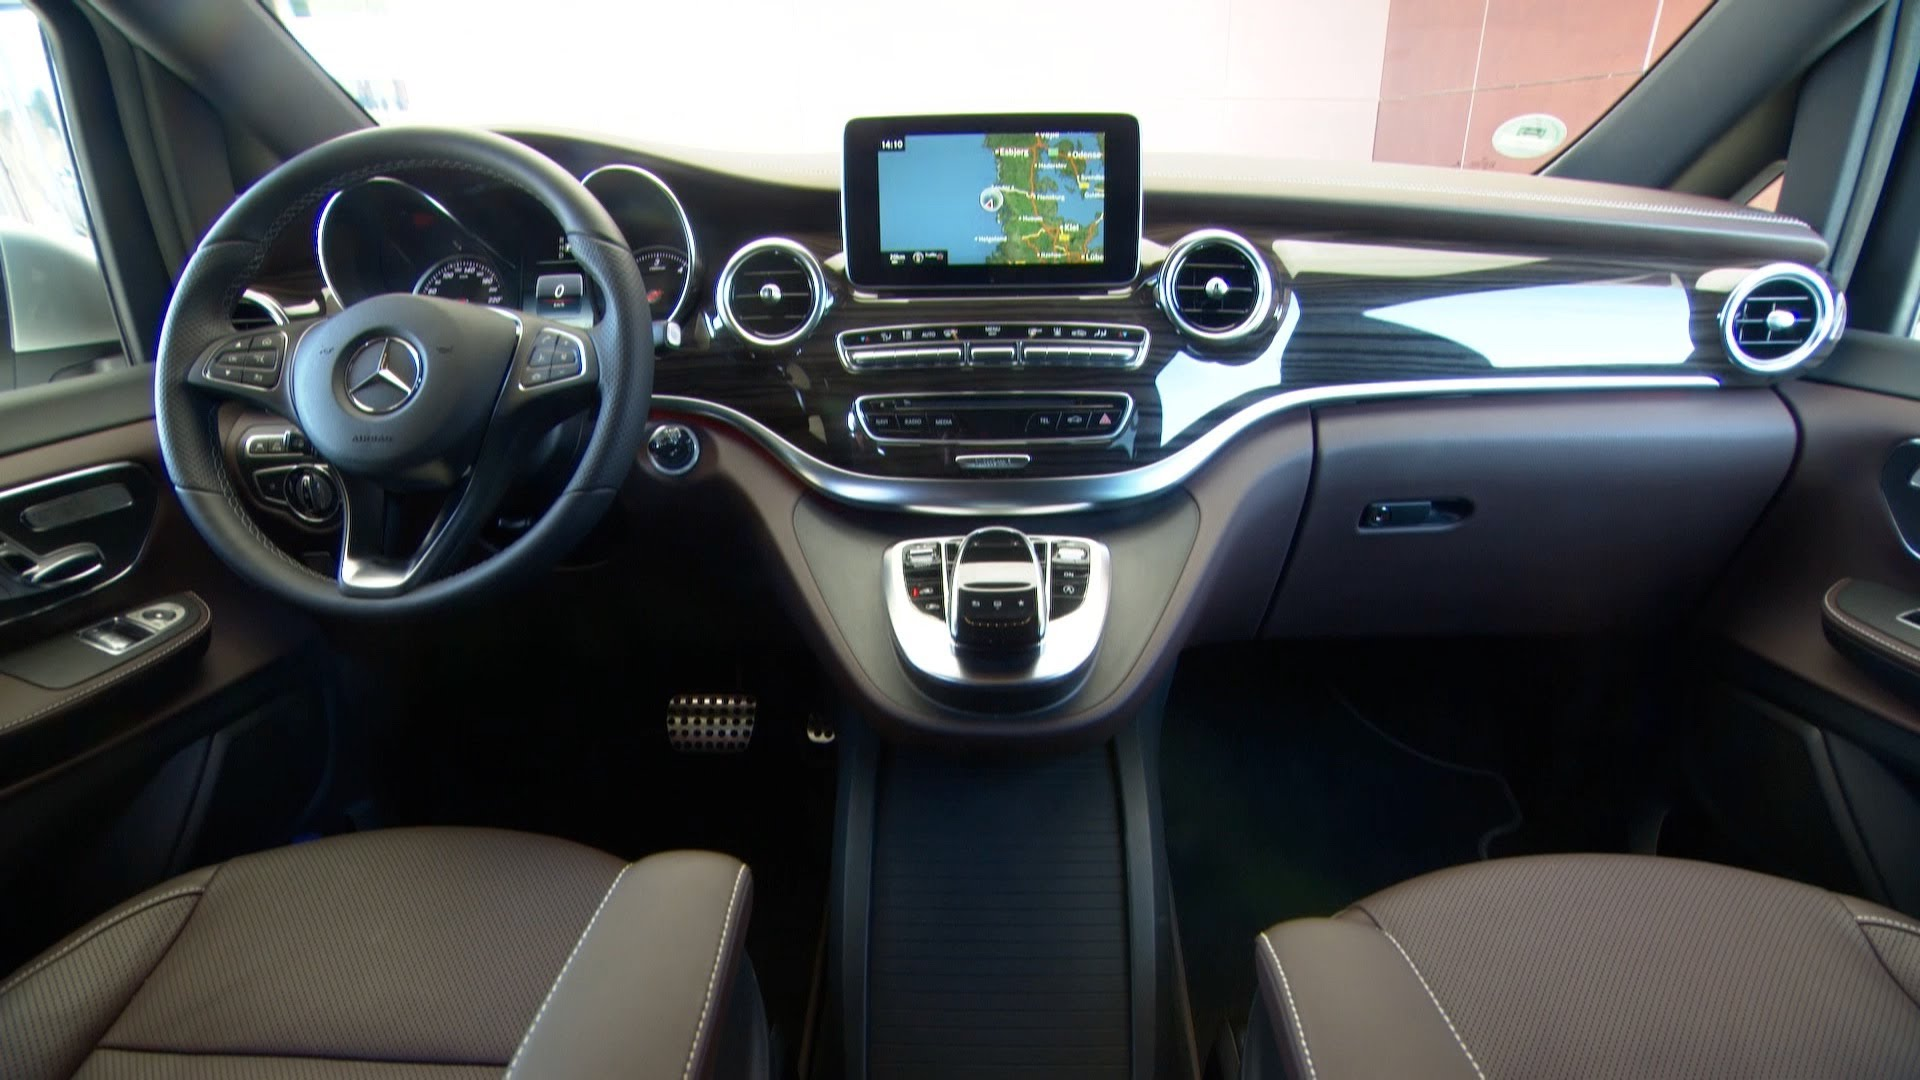 adorable-design-of-the-grey-seats-ideas-with-black-and-grey-dash-as-the-mercedes-benz-v-class-2015-interior